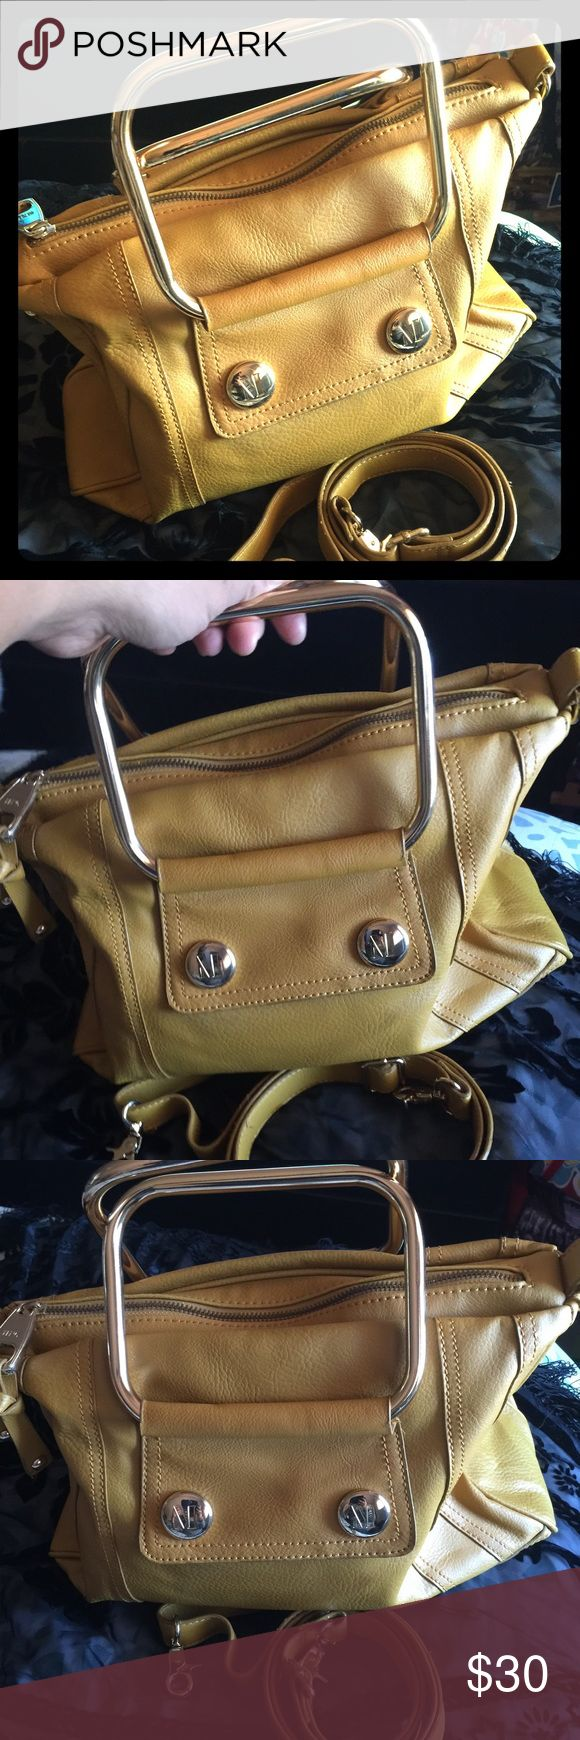 MANGO handbag with top handle and cross body strap Used once.  Authentic MANGO vintage yellow handbag with top handle and cross body strap. Mango Bags Crossbody Bags